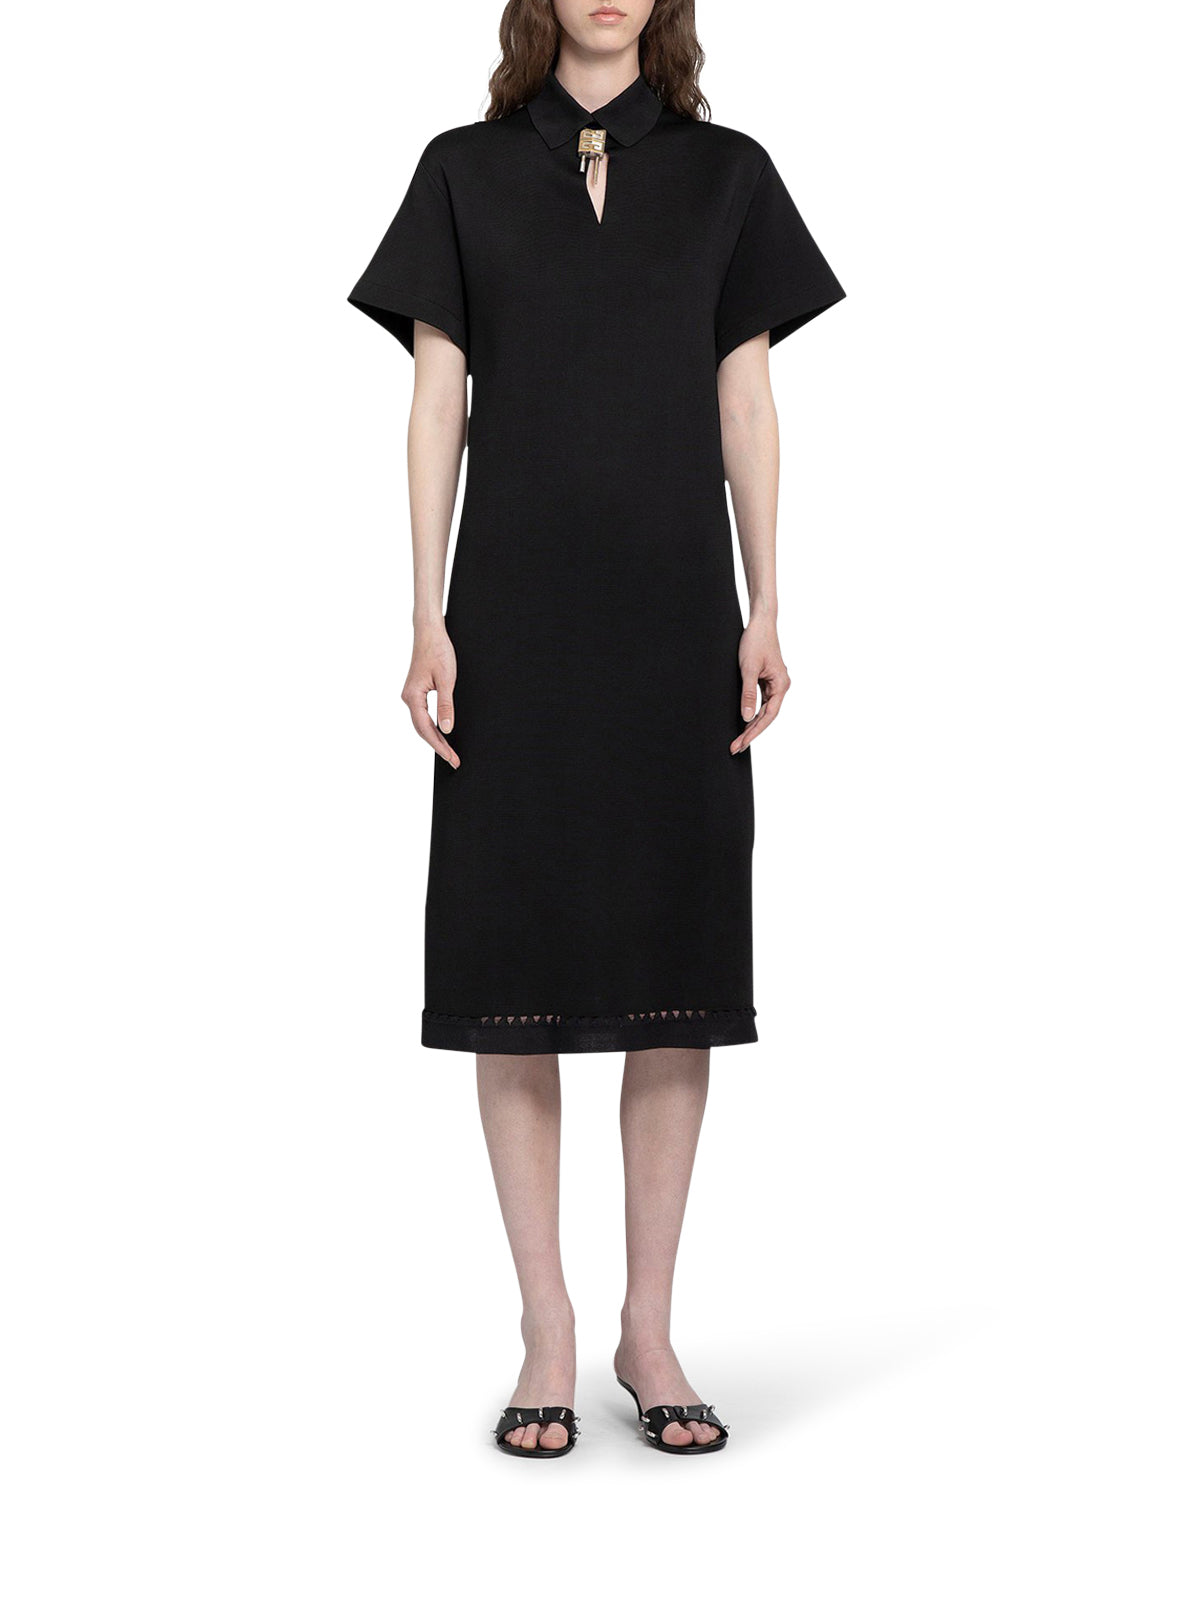 Black midi dress with logo lock